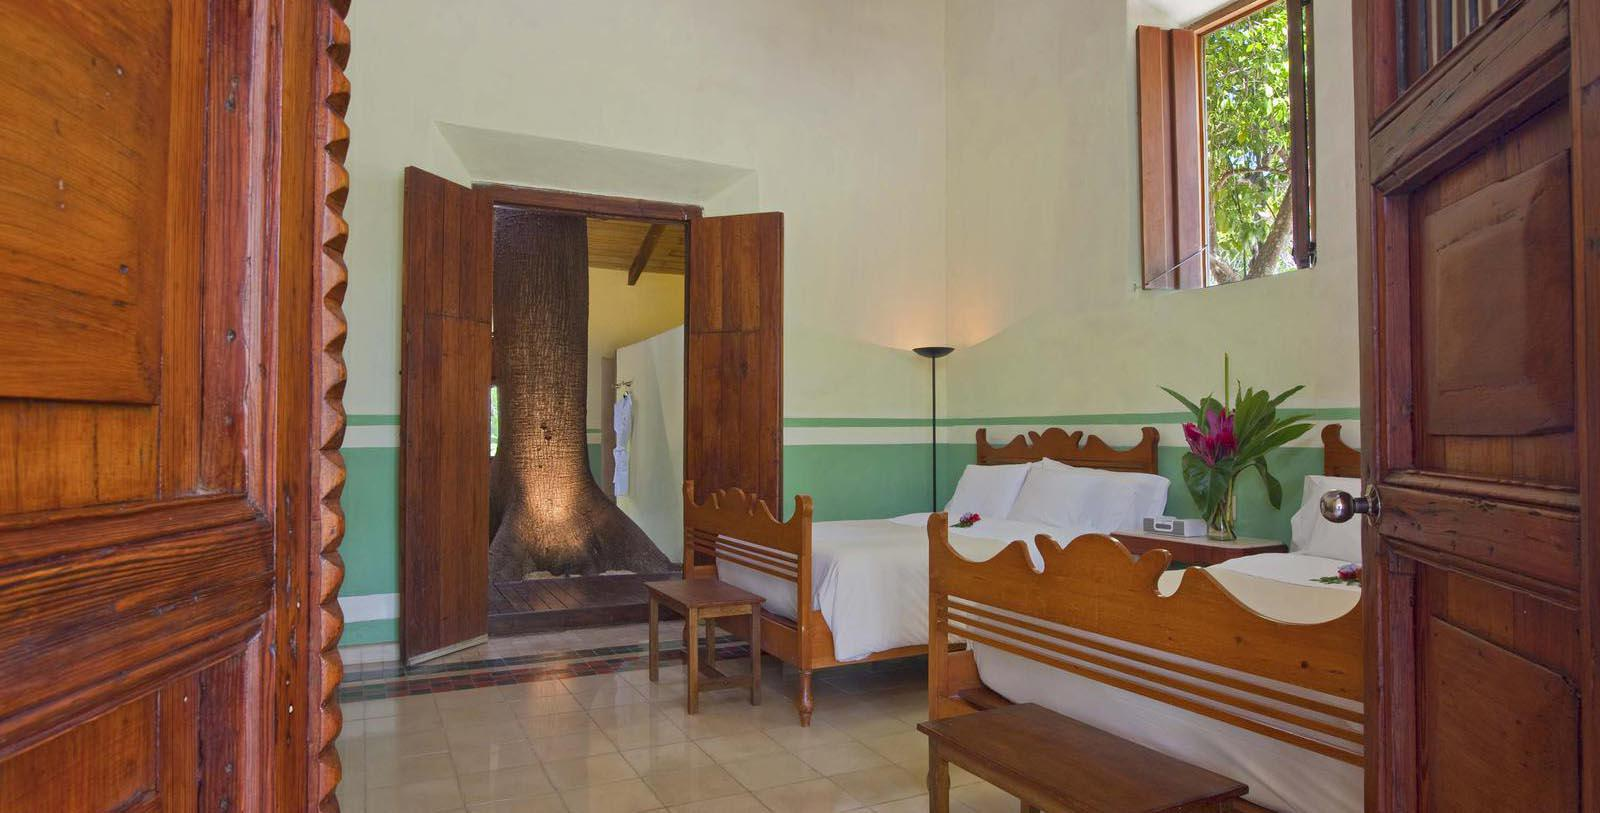 Image of Guestroom Interior, Hacienda San Jose, A Luxury Collection Hotel, Tixkokob, Mexico, 1800, Member of Historic Hotels Worldwide, Accommodations